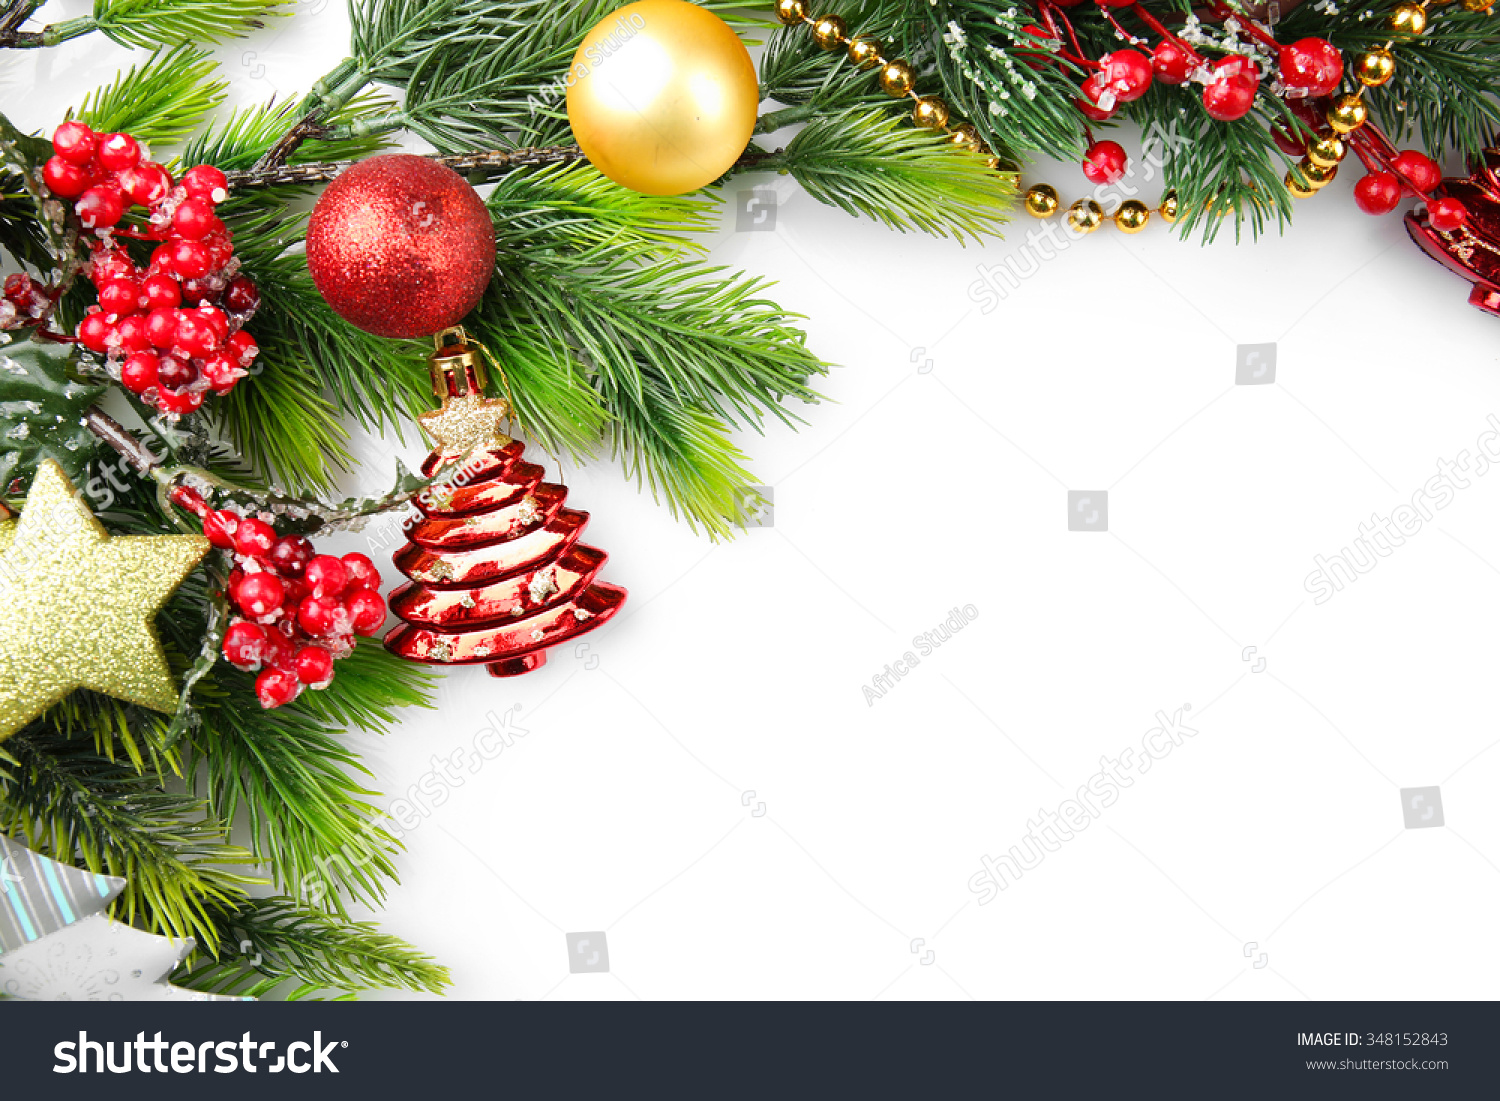 Christmas Tree Branch With Red Berries And Decorations On